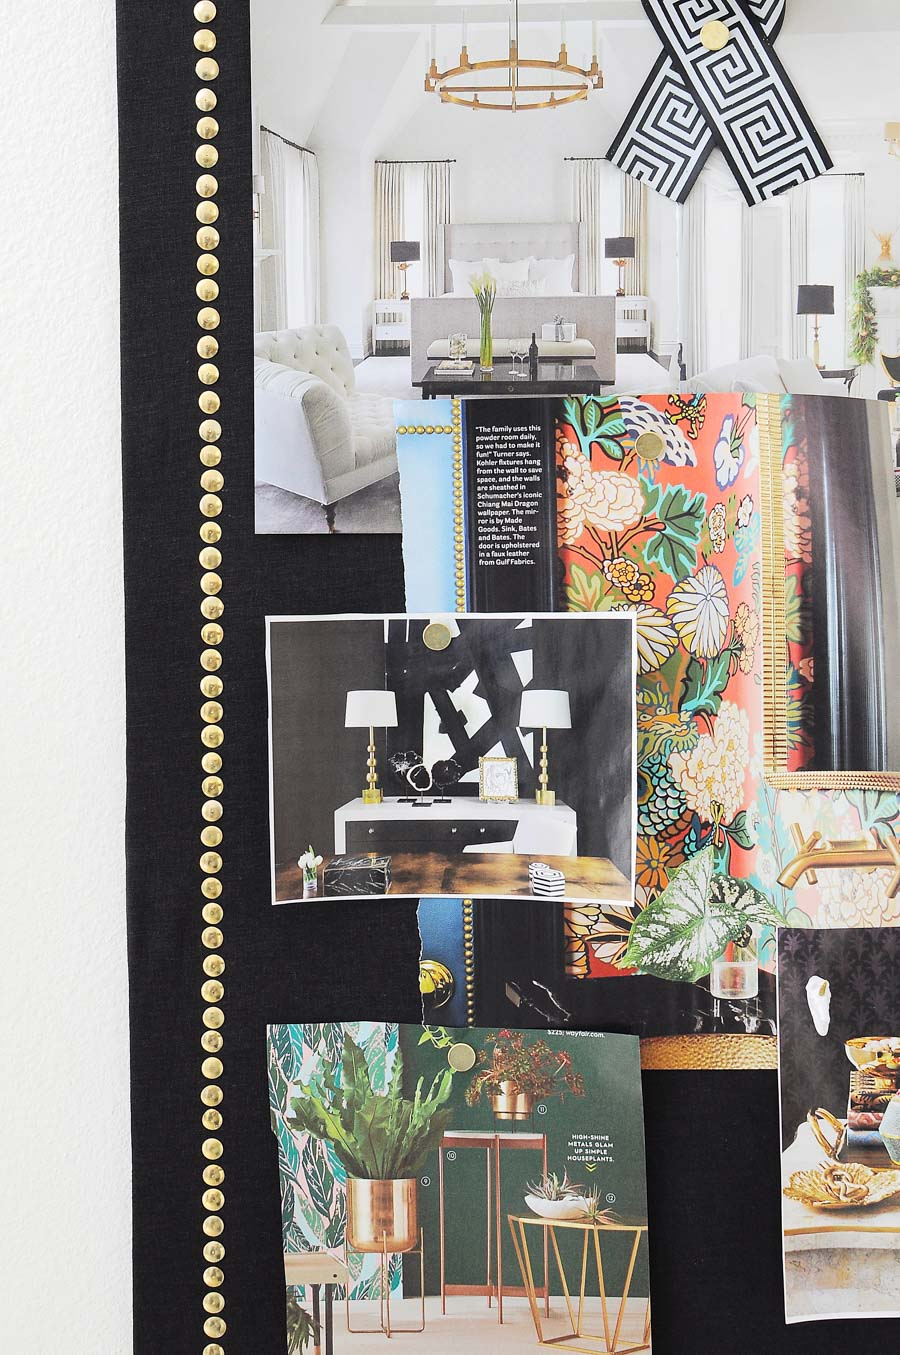 This chic cork or memo board is made from dollar store supplies and looks just like an expensive Restoration Hardware version. This DIY tutorial is great and the end result is stunning.